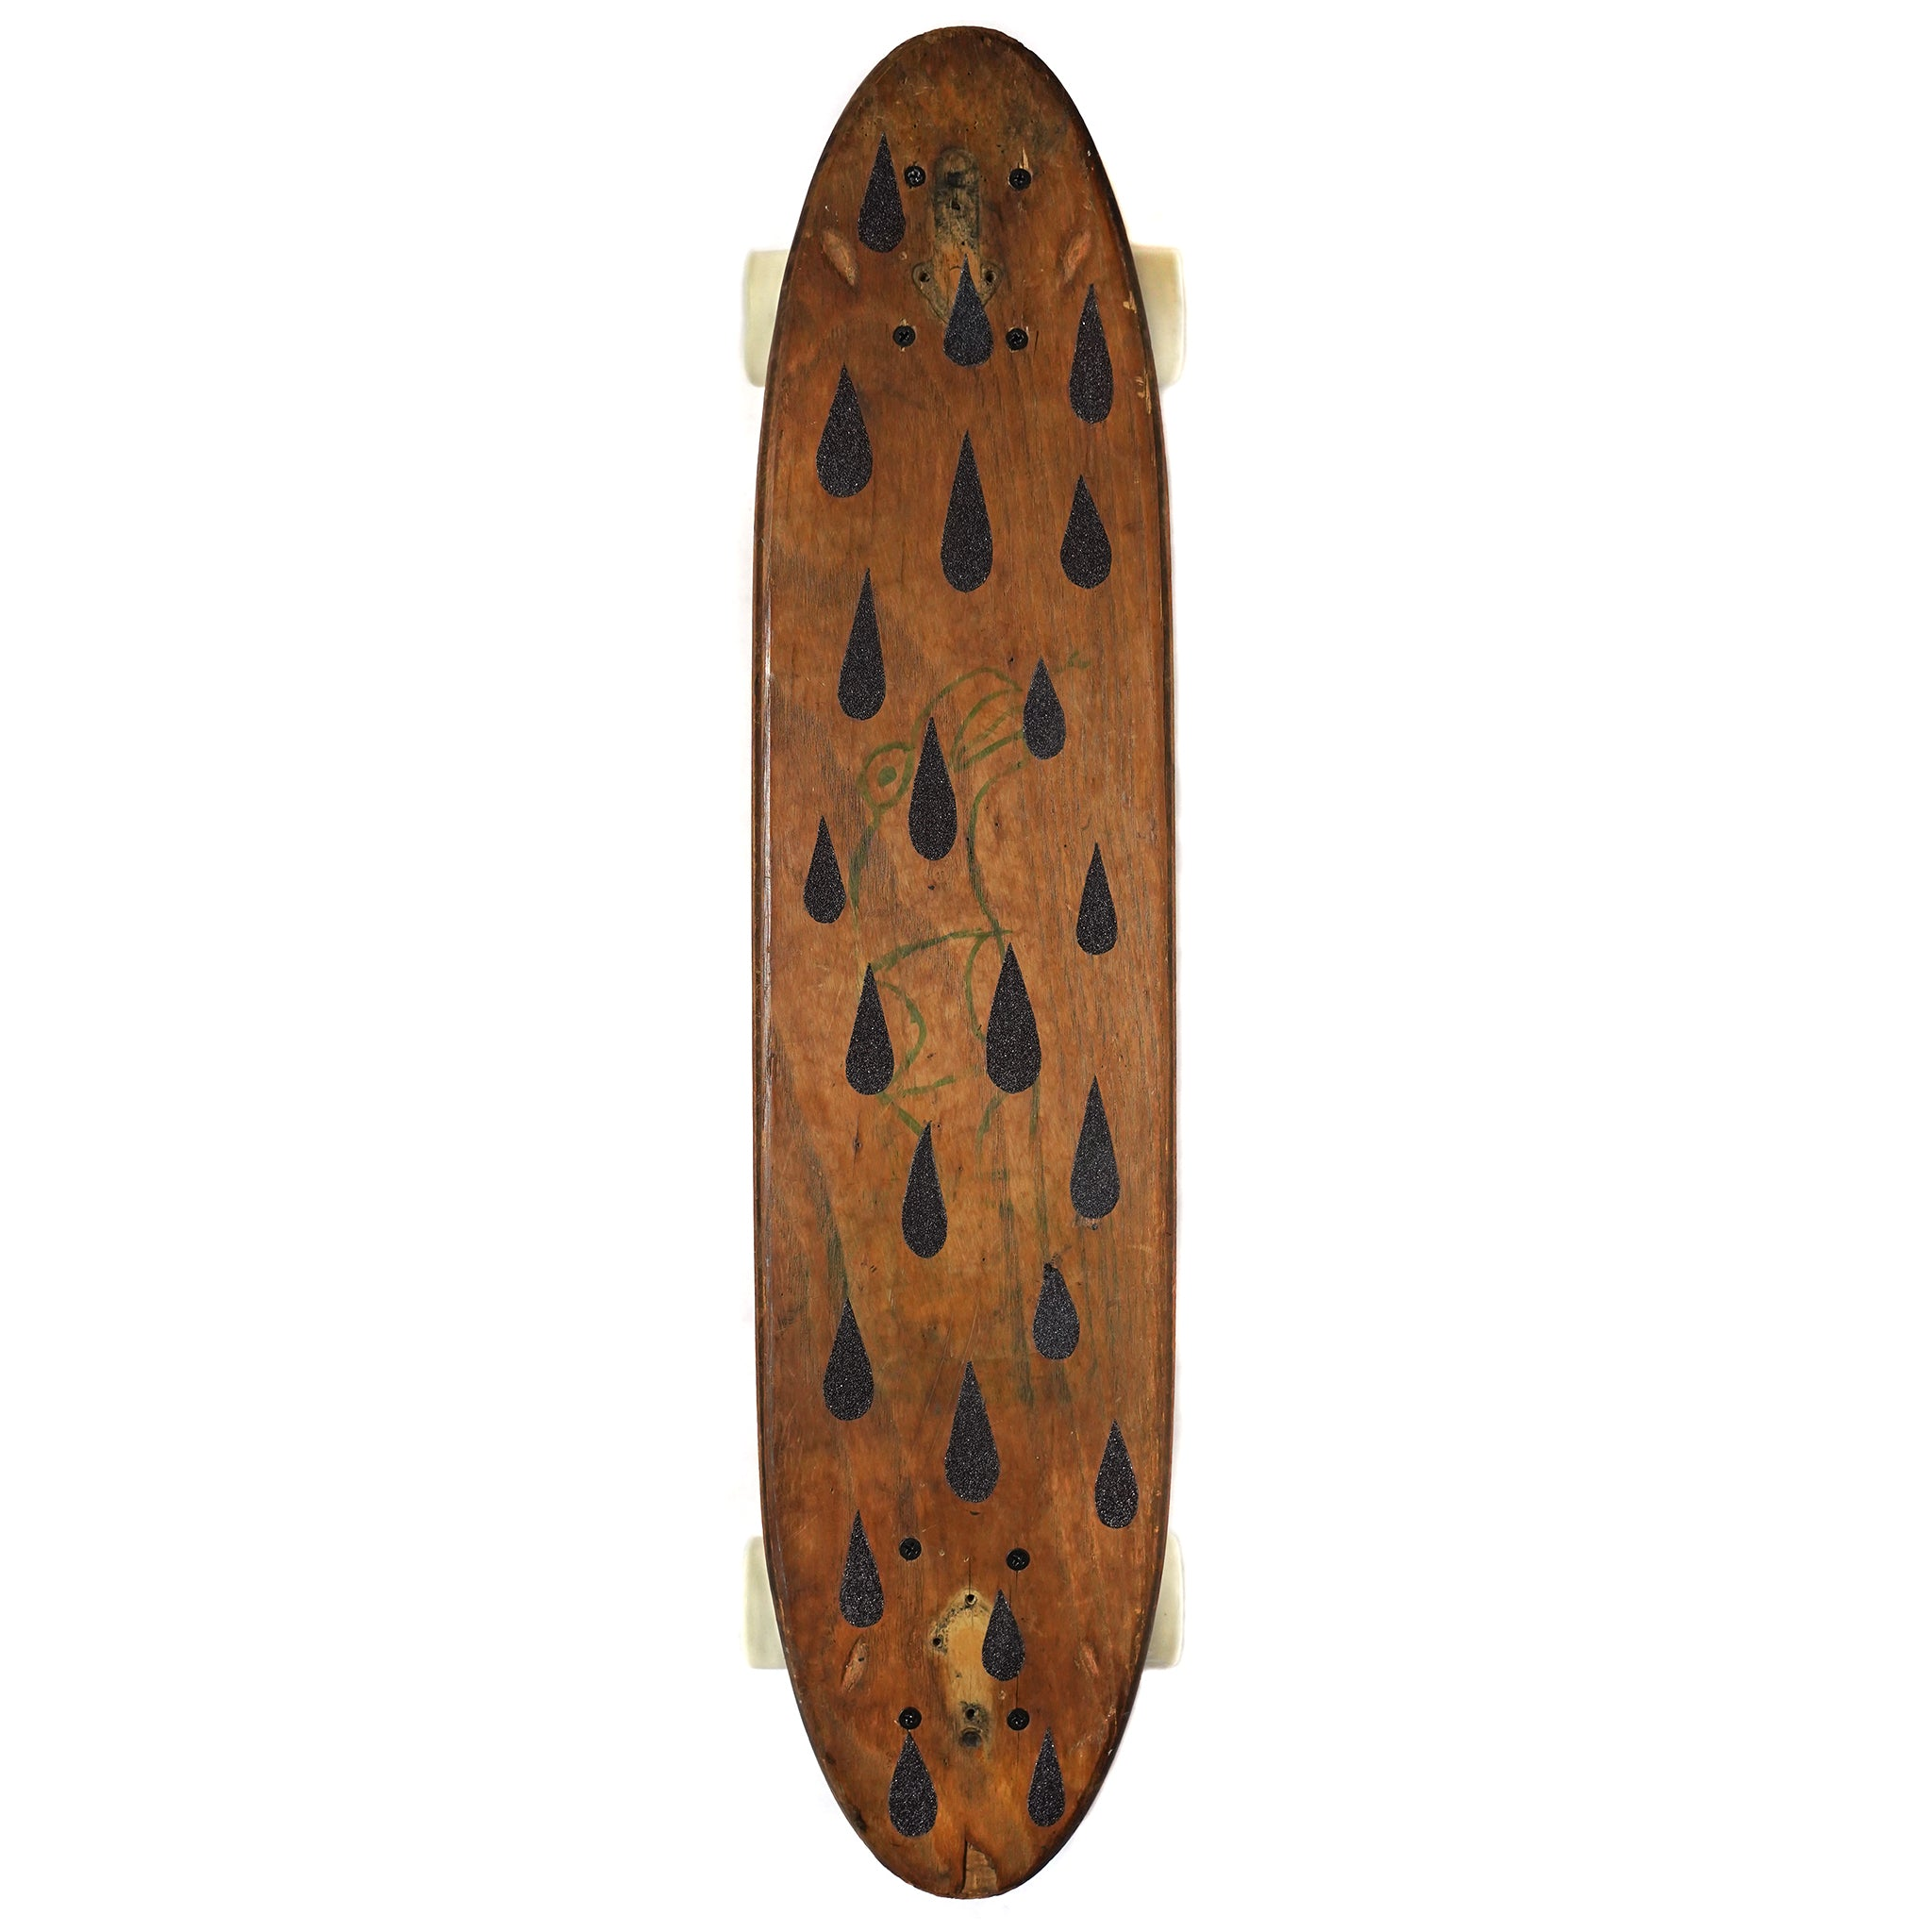 Drippy Black Skateboard